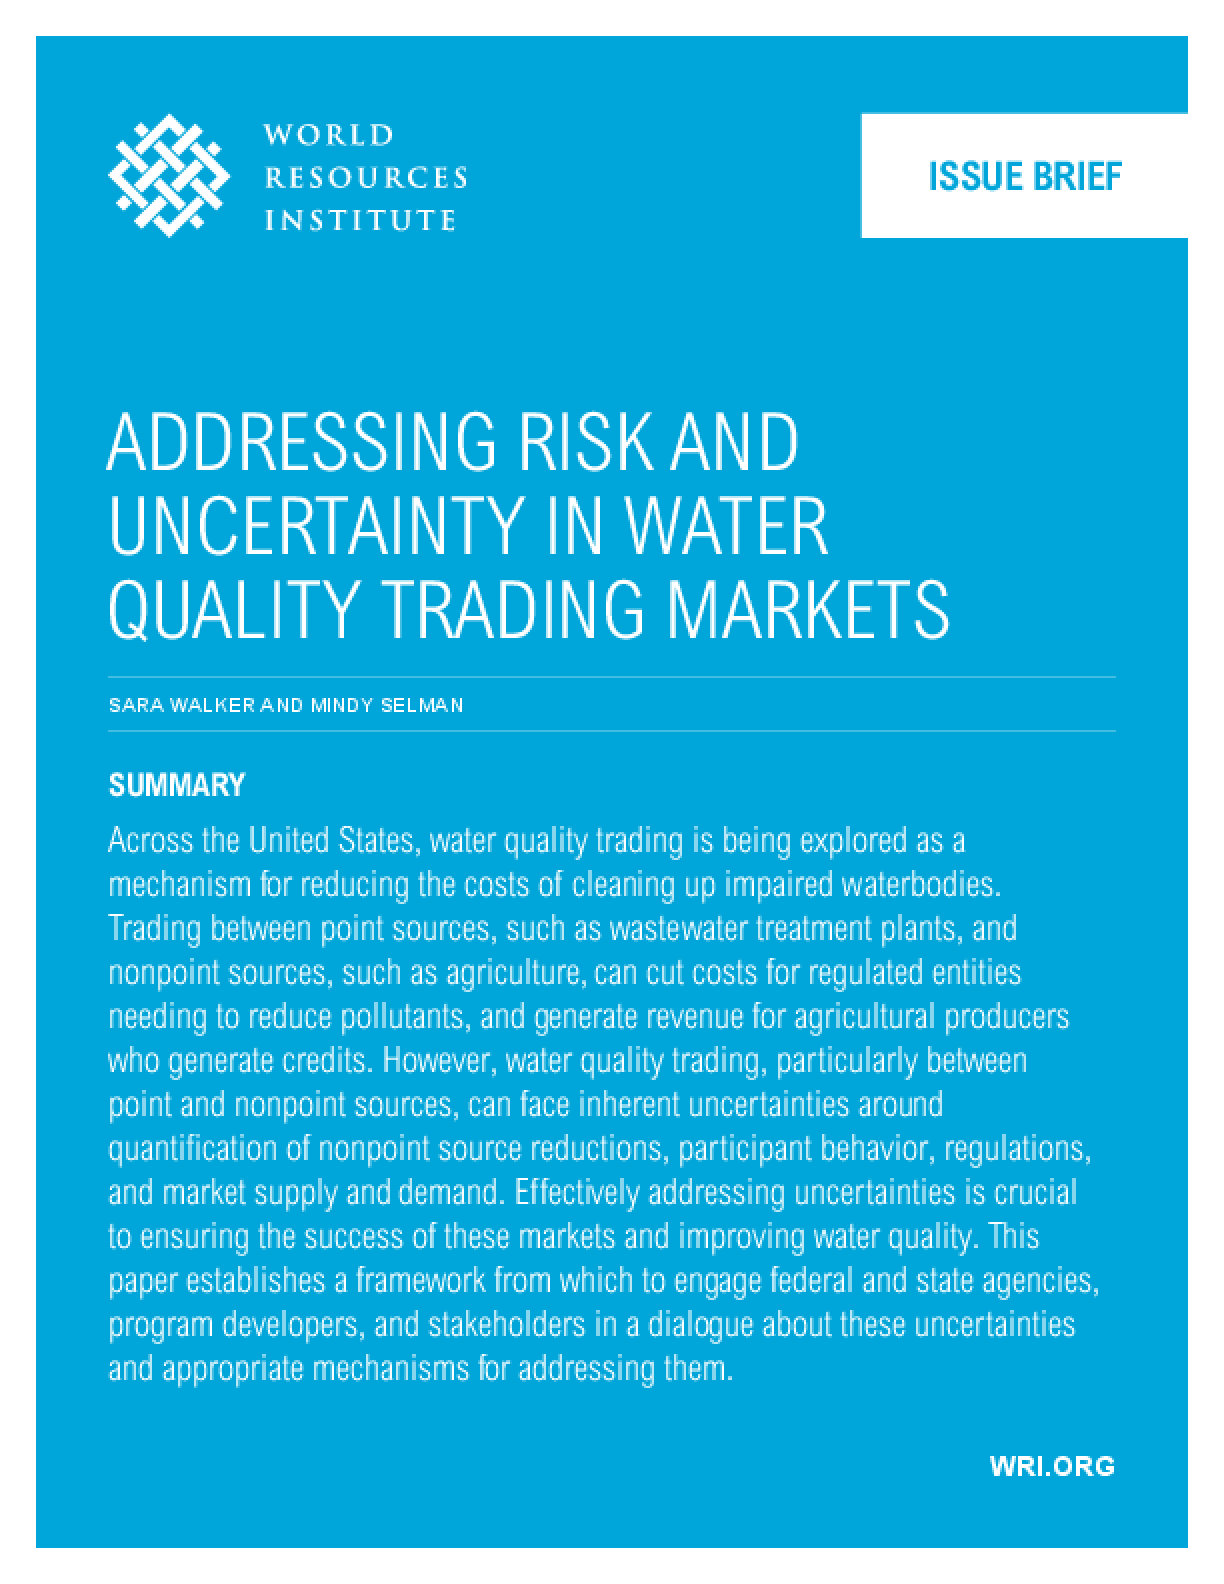 Addressing Risk and Uncertainty in Water Quality Trading Markets